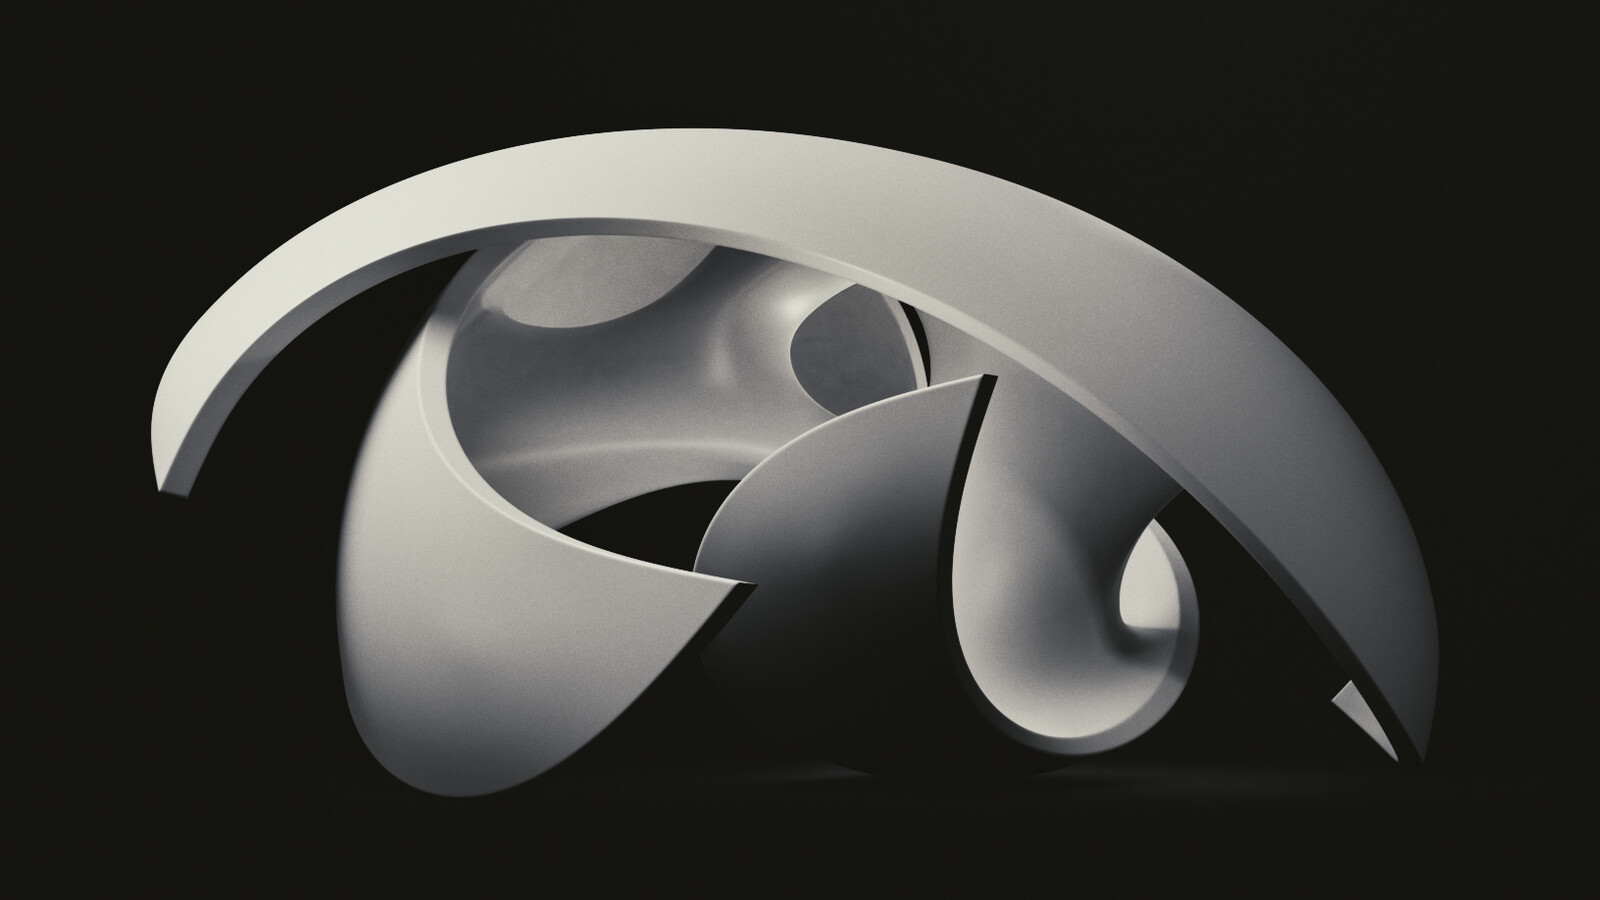 Moonray abstract sculpture